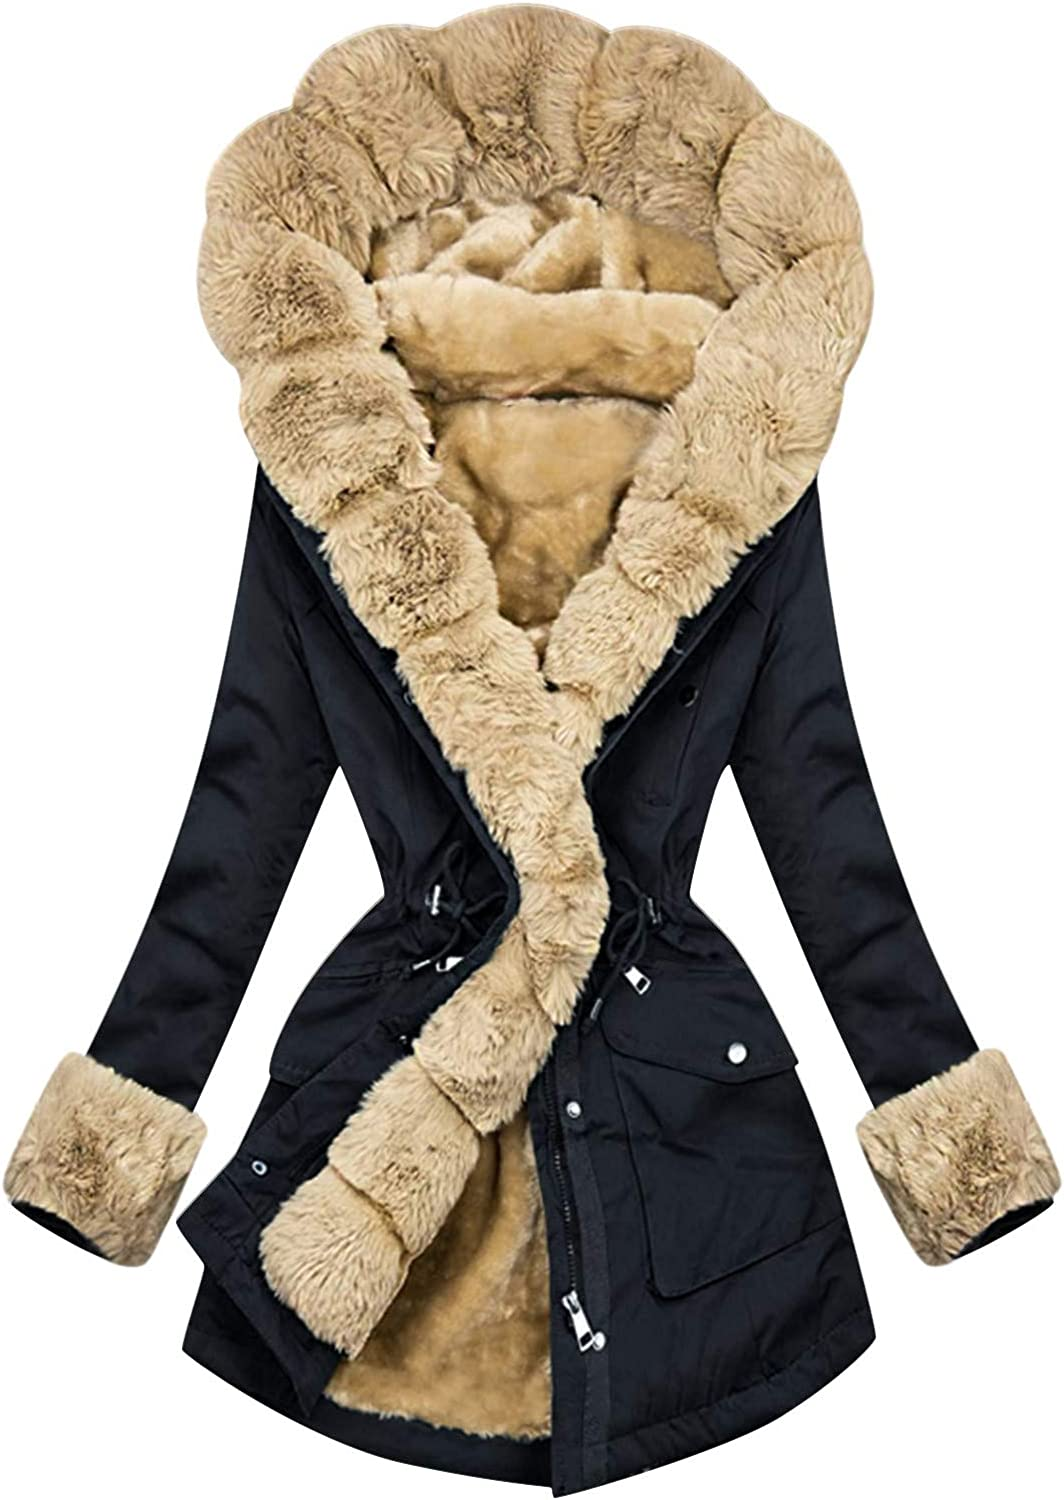 Hgndbloo Womens Button Coat Casual Jacket Hoodies Overcoat Thick Padded Outerwear Winter Long Sleeve Tops with Pocket